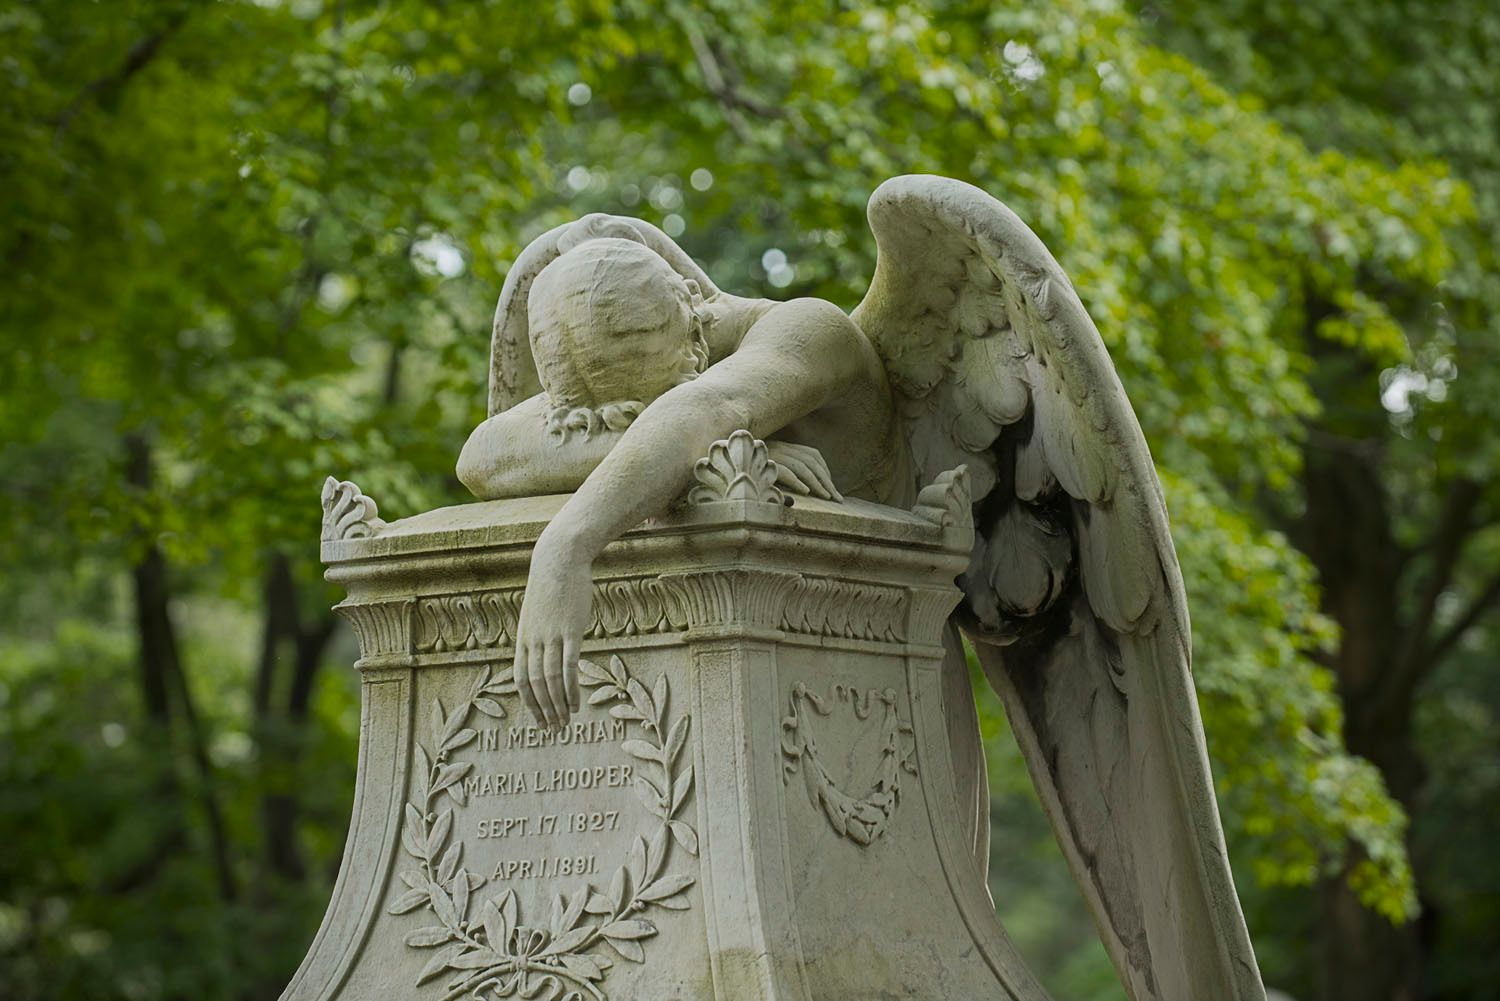 Cemetery Angel Statue, Hingham, MA